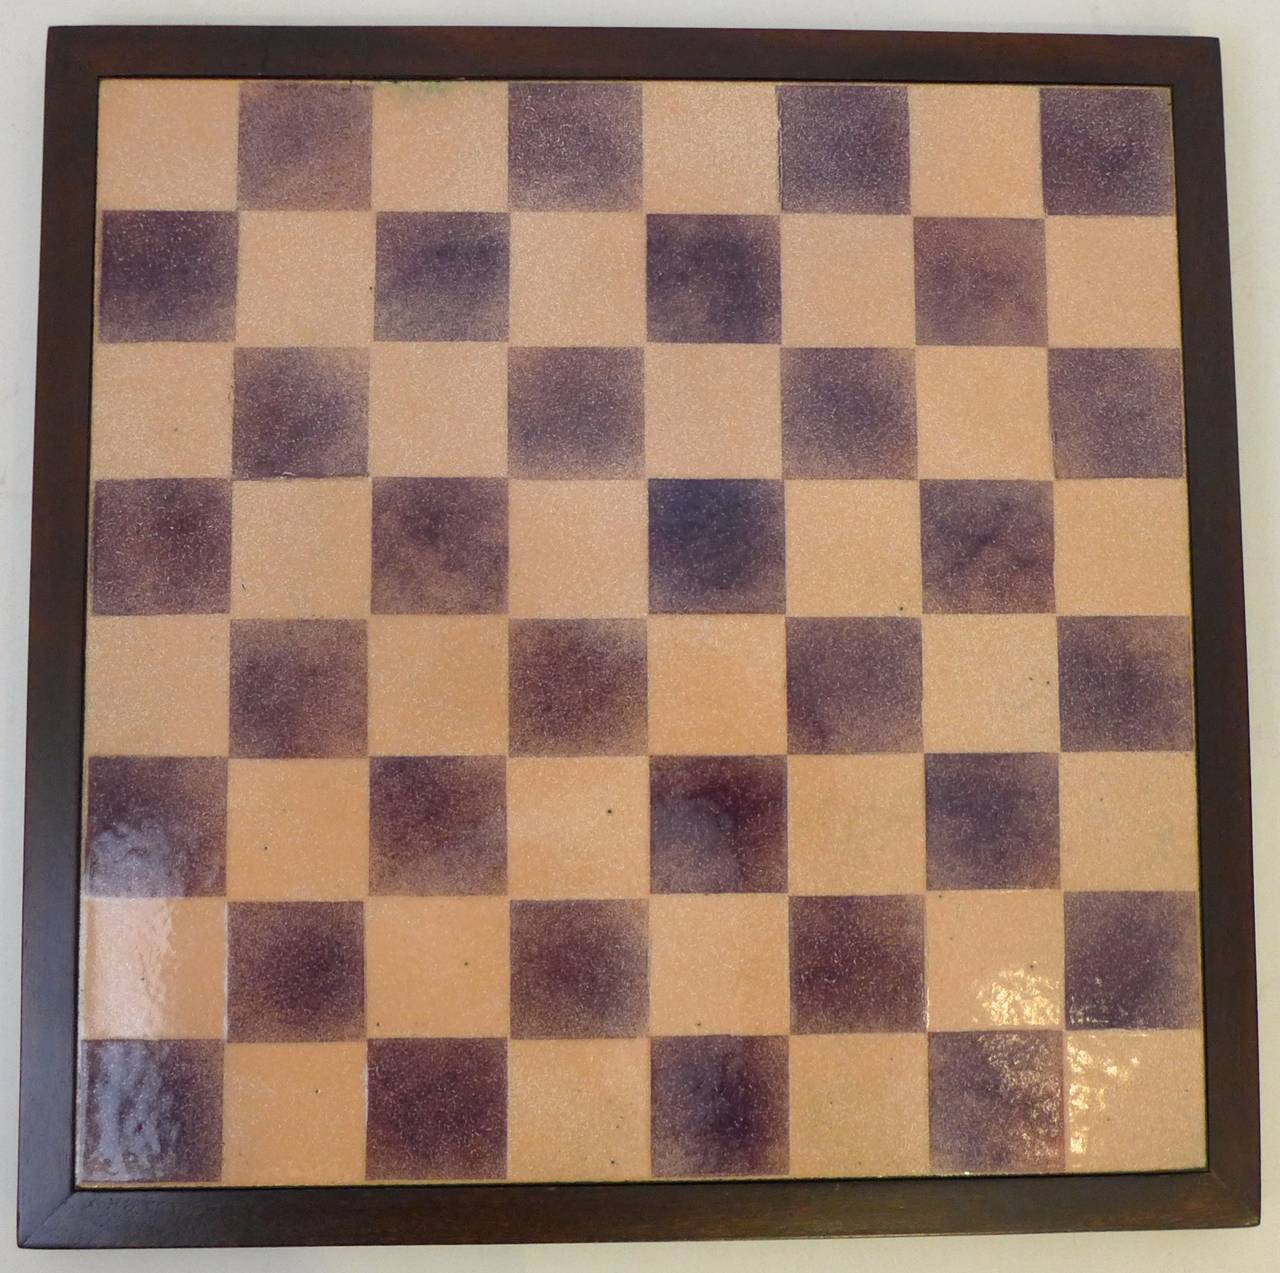 Enameled copper chessboard with dark walnut frame and felted back by Italian painter and master enamelist Paolo De Poli. Beautifully orchestrated colors in variegated purple and peach enamel with iridescent flecks of gold. In excellent original